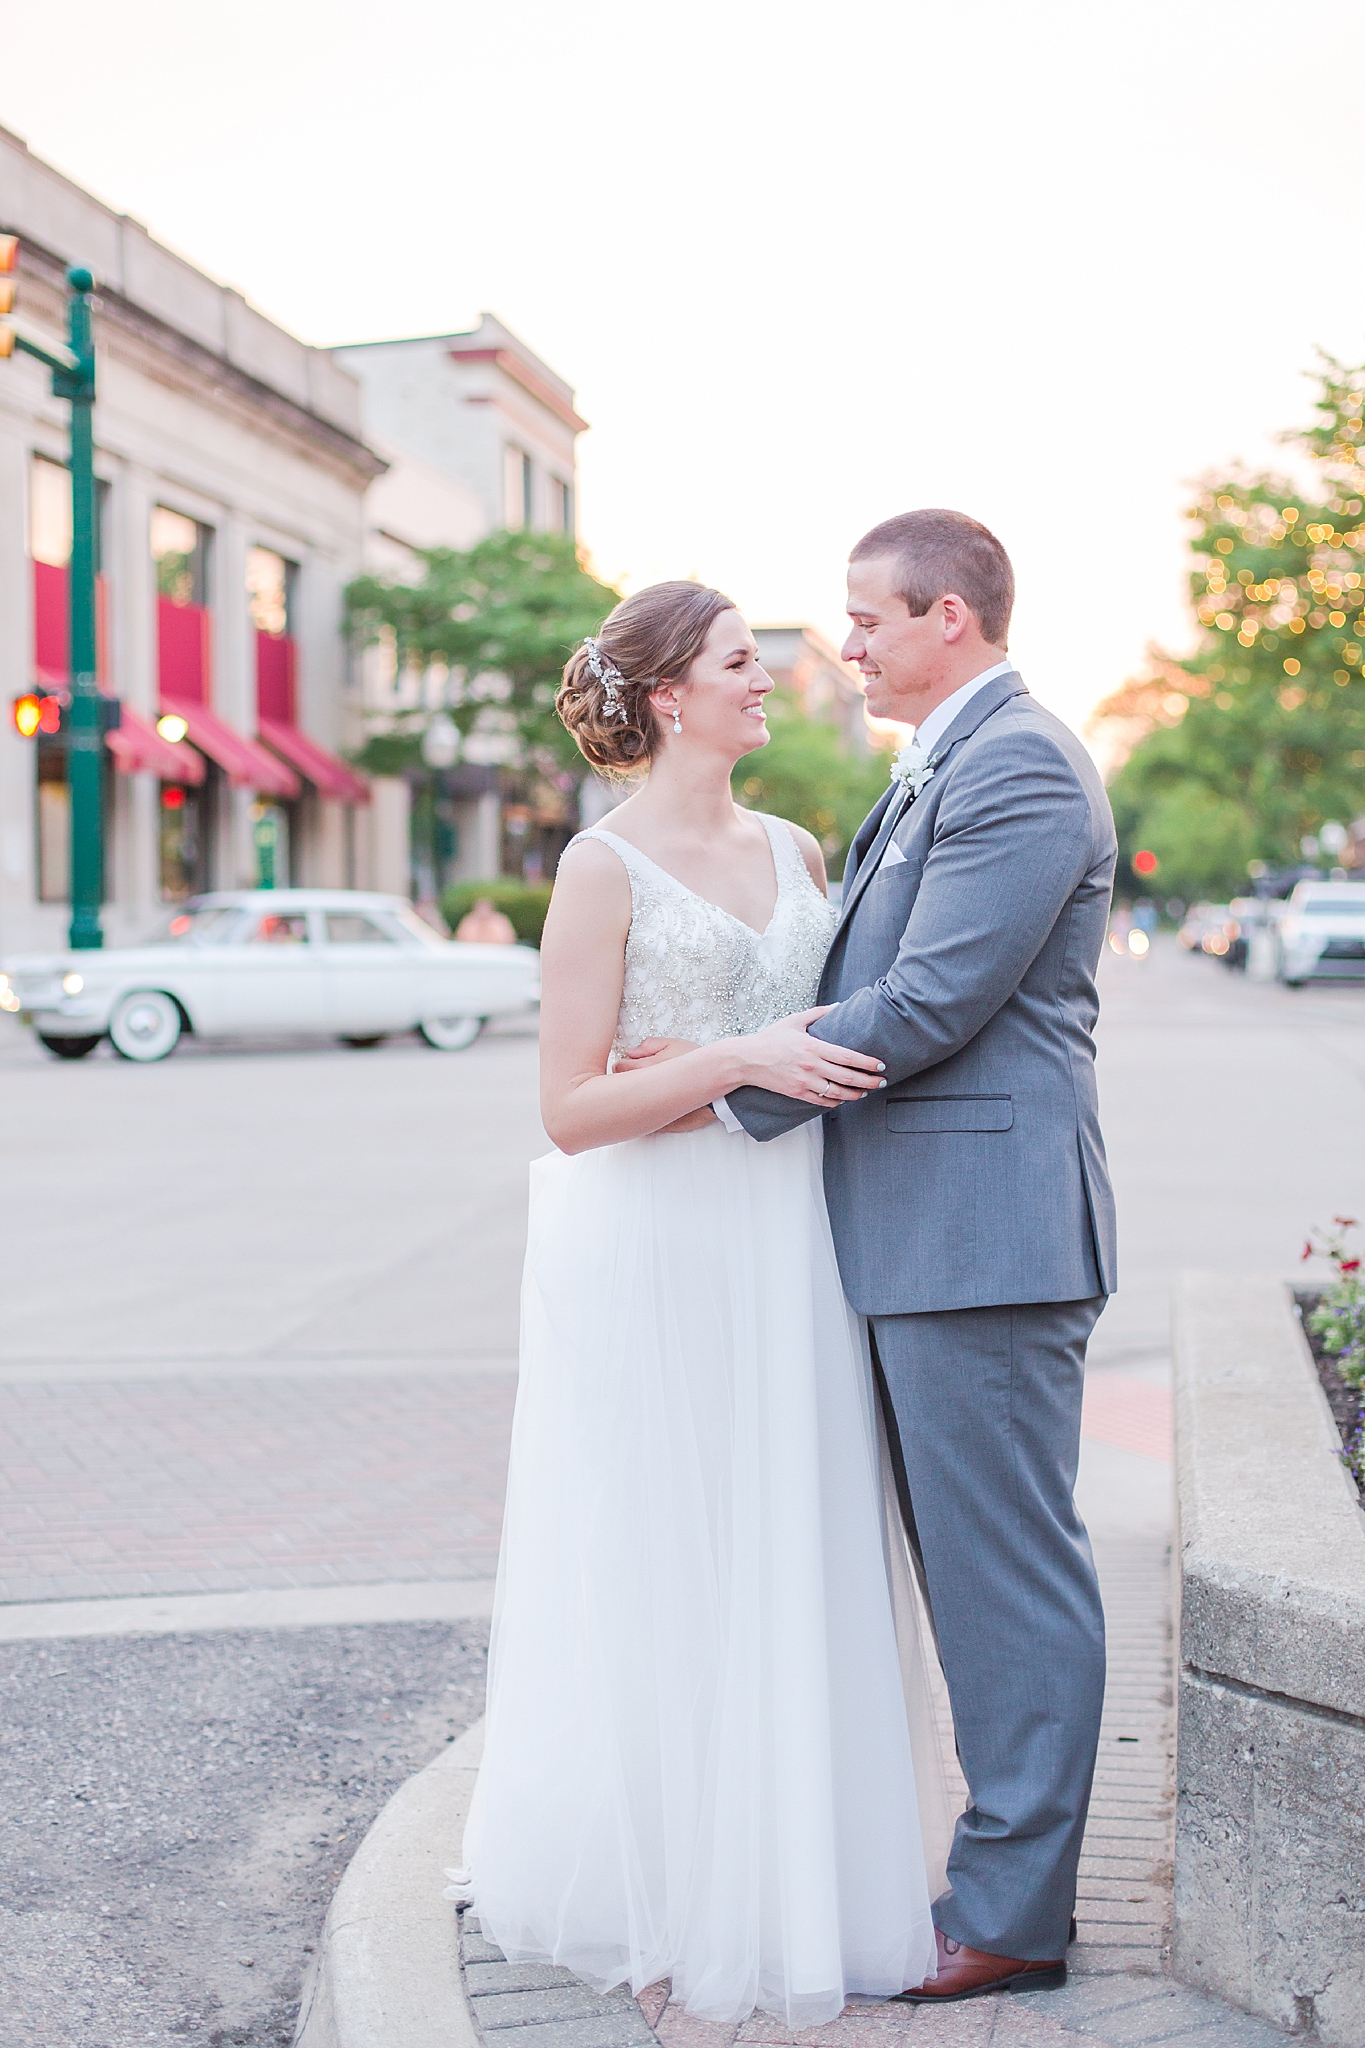 joyful-romantic-modern-laid-back-wedding-photography-in-detroit-ann-arbor-northern-mi-and-chicago-by-courtney-carolyn-photography_0041.jpg